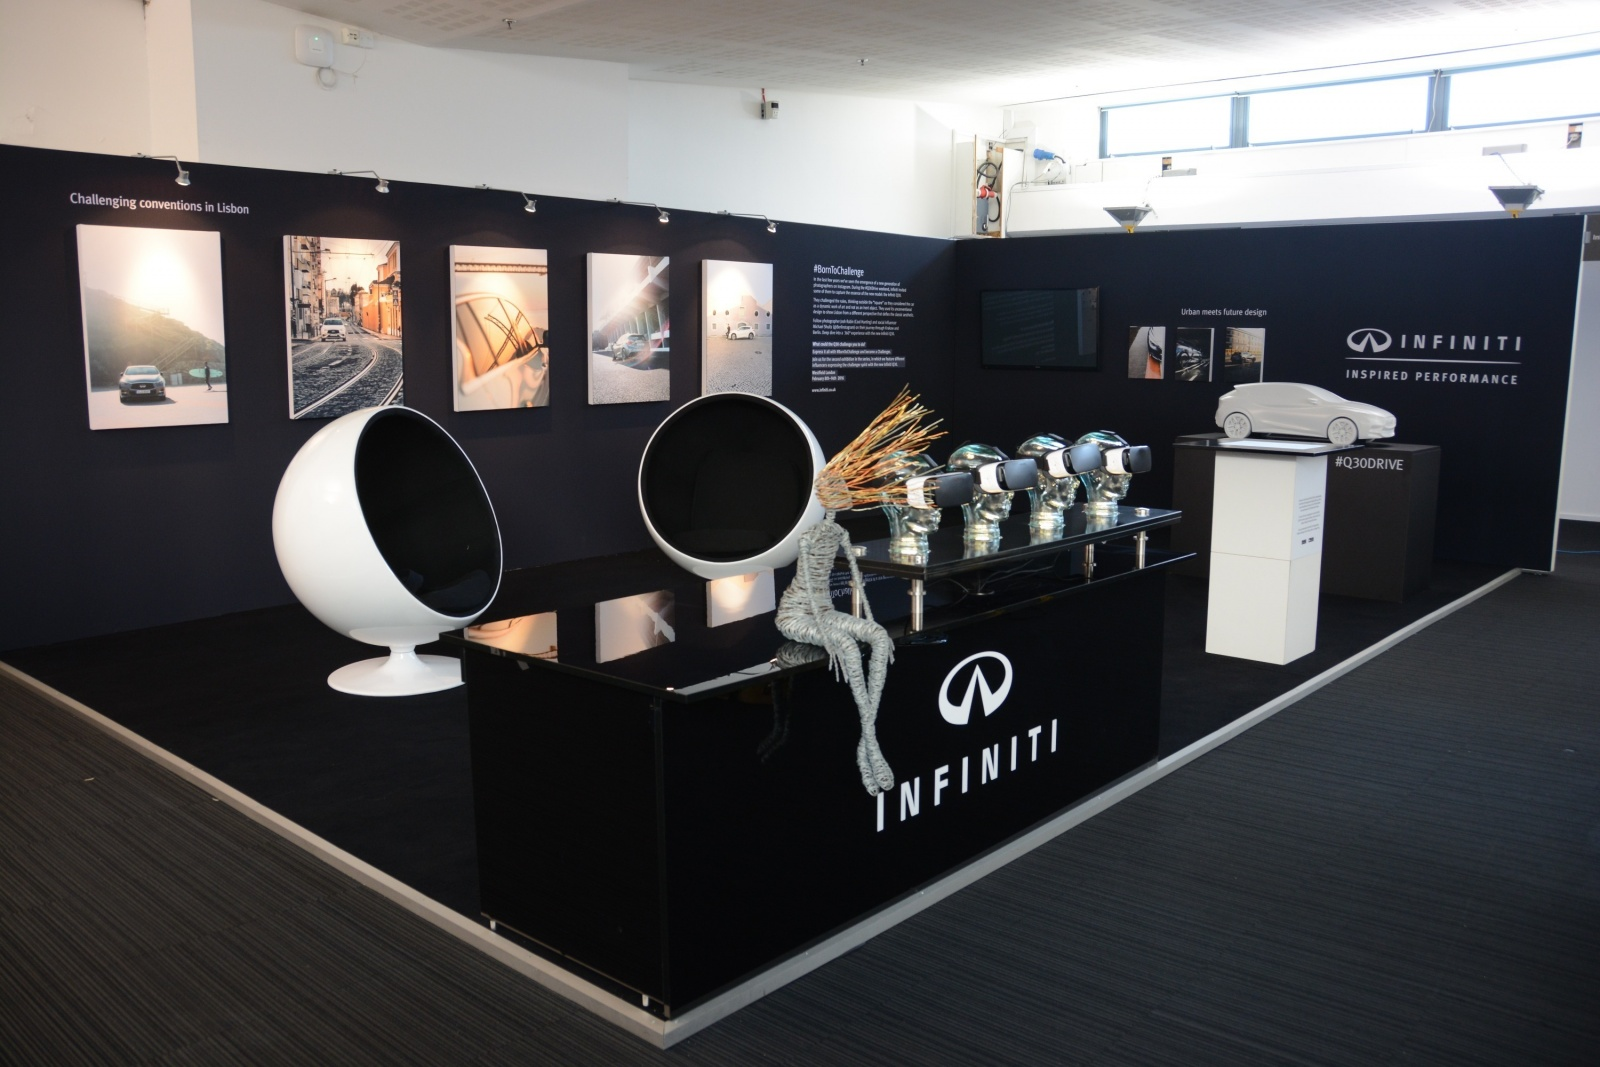 infiniti-makes-an-impression-at-the-london-art-fair-with-q30-car-art-photo-gallery_2